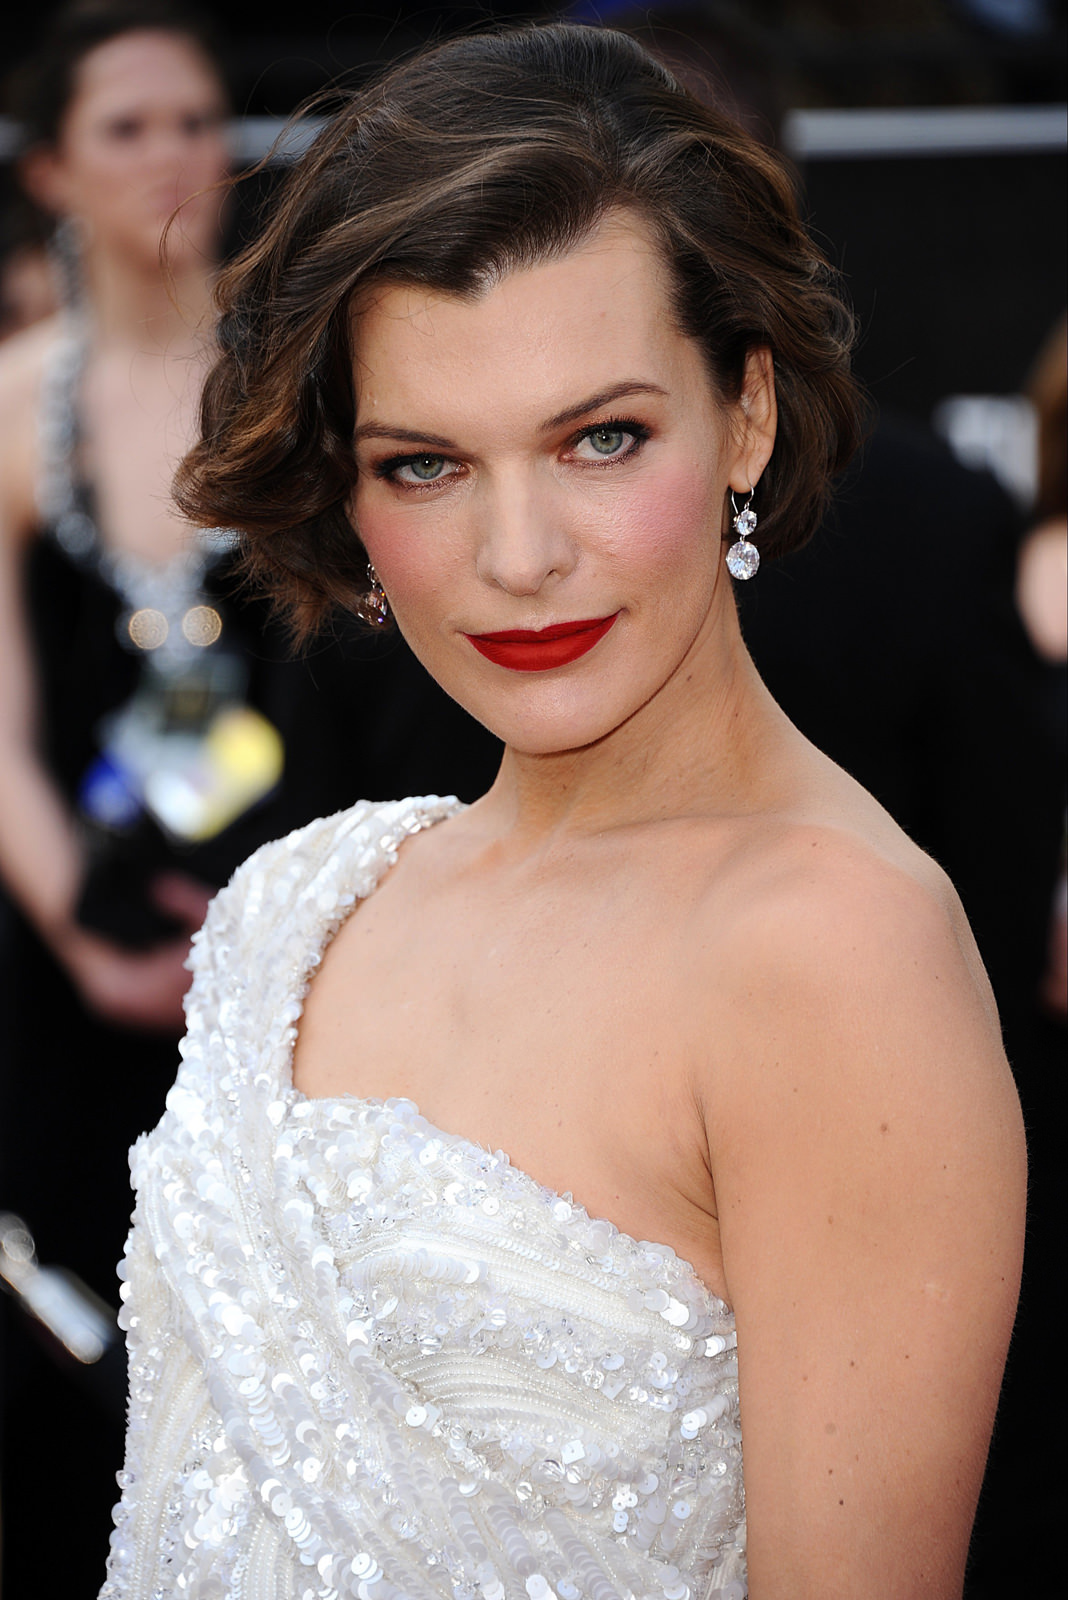 Milla Jovovich Photo Gallery